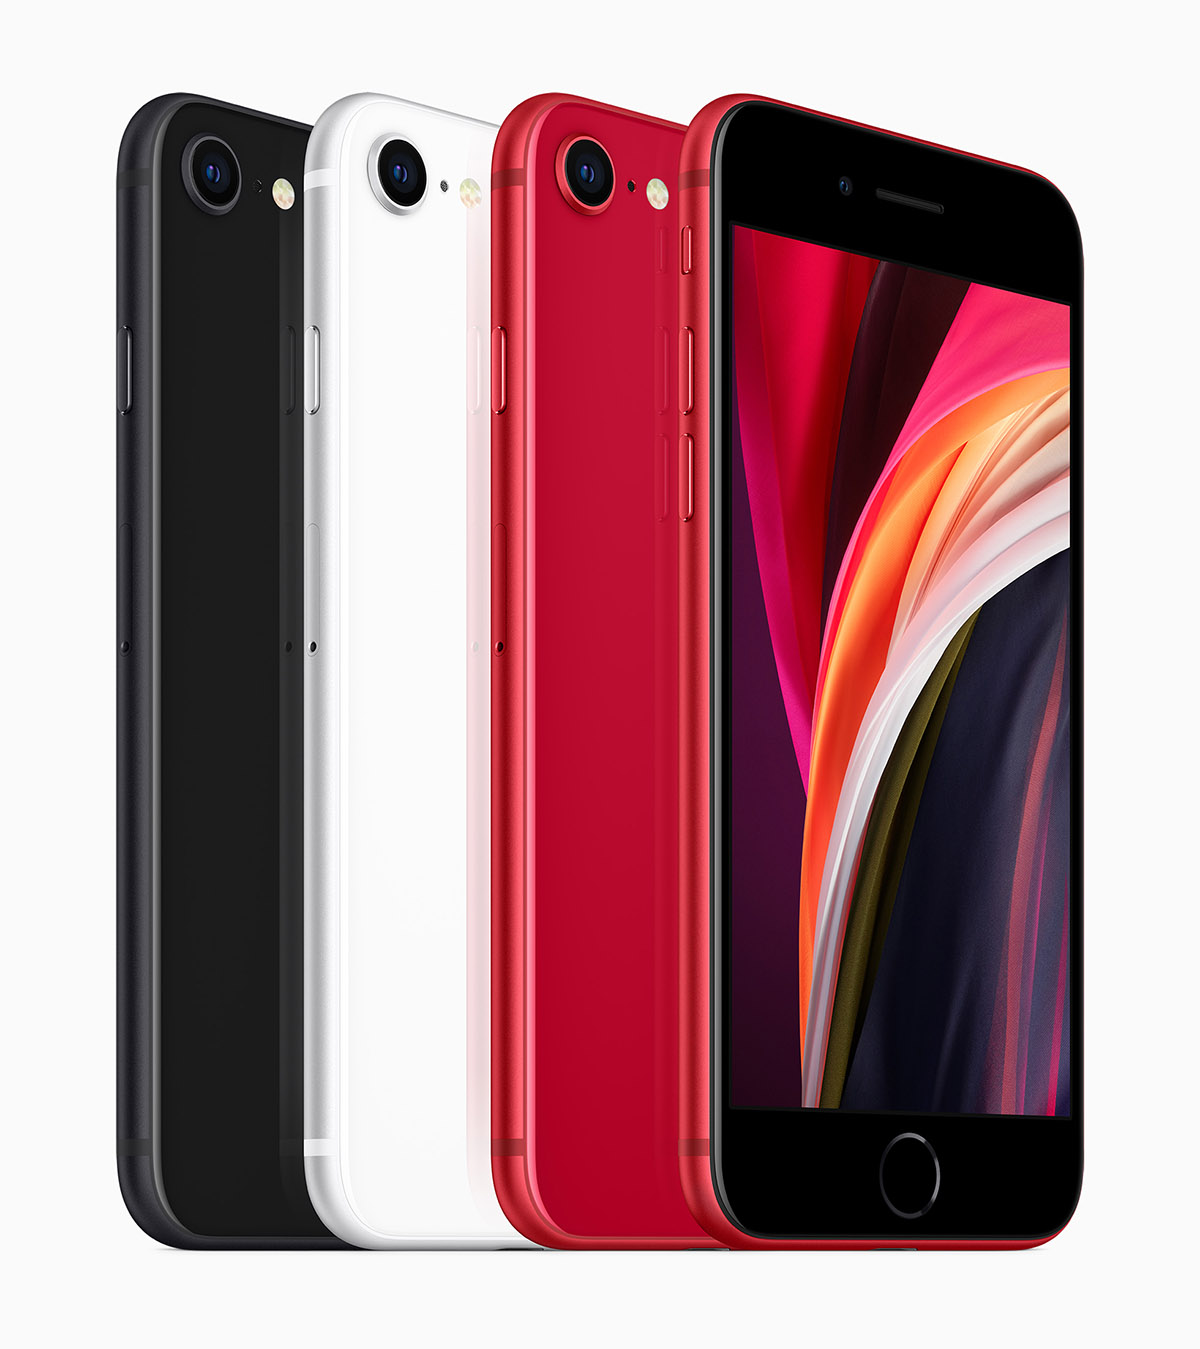 Apple_new-iphone-se-black-white-product-red-colors